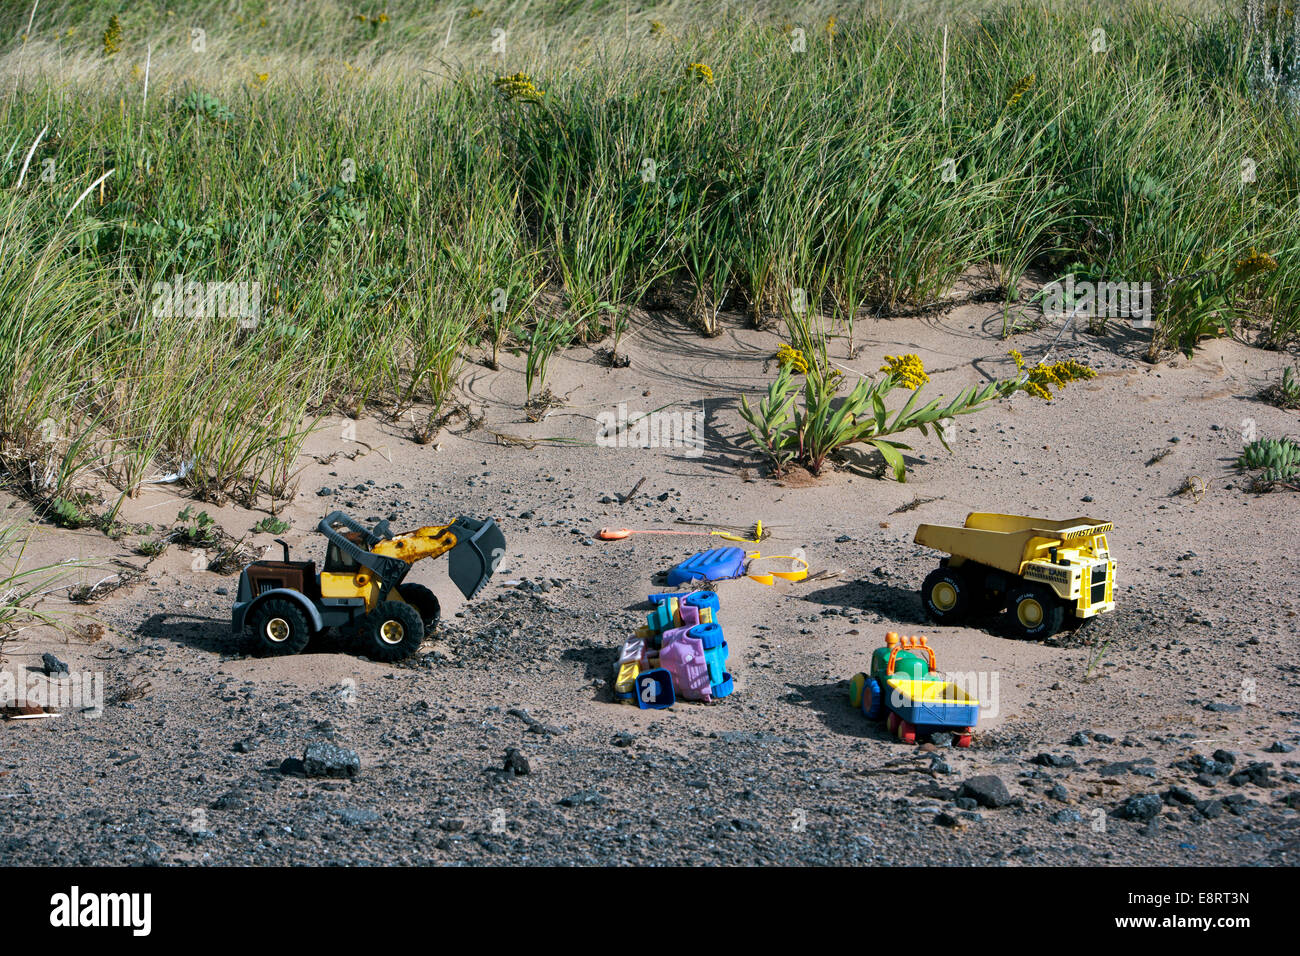 Toys left behind in the Sand - Covehead Harbour - York, Prince Edward Island, Canada - Stock Image